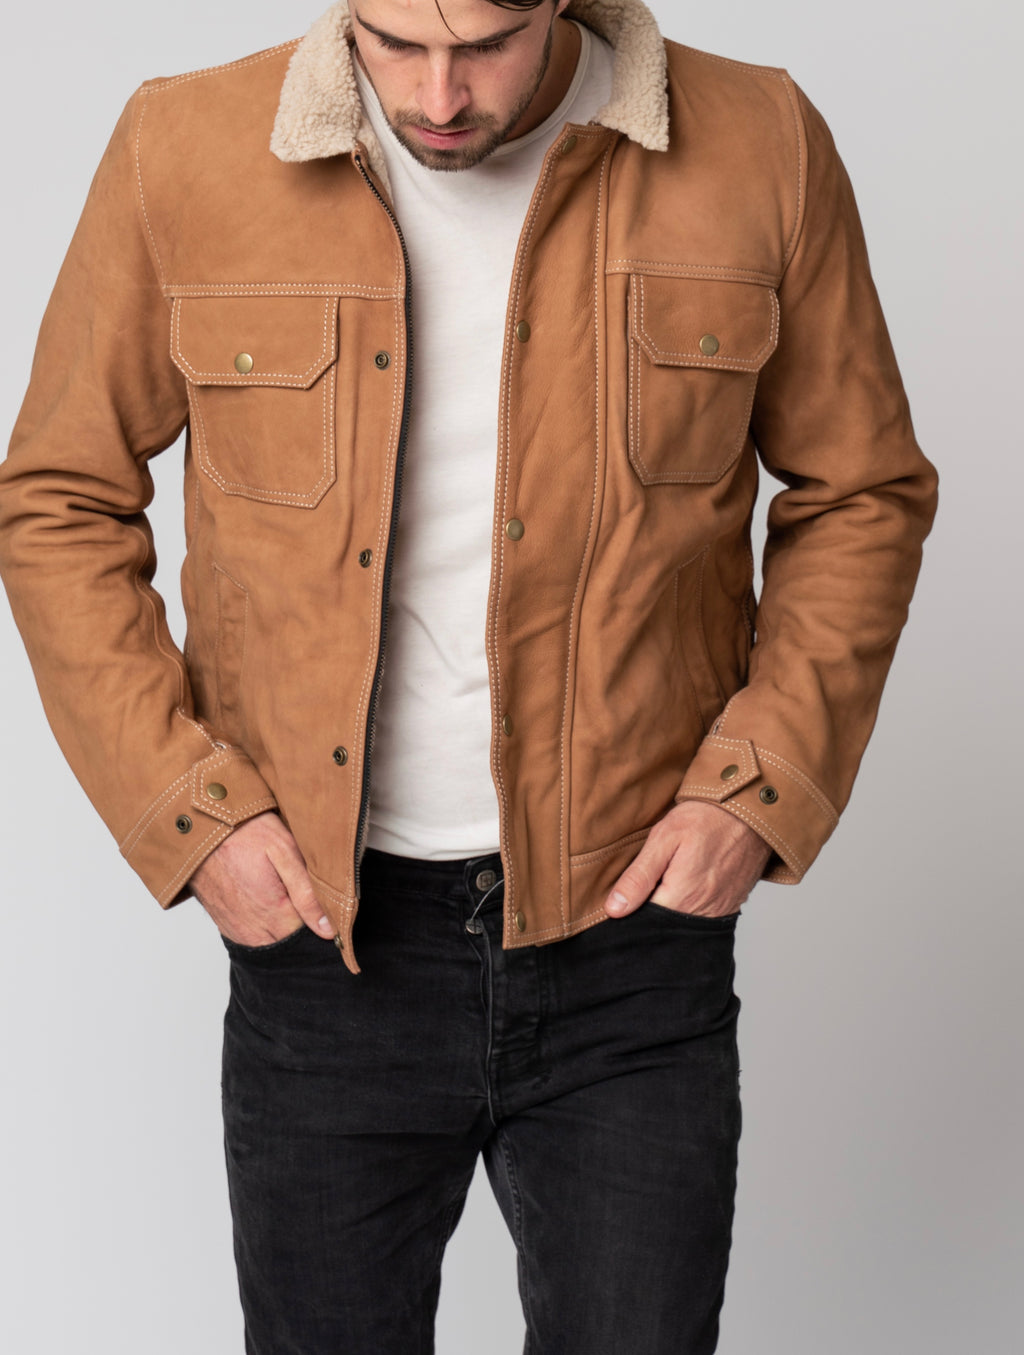 Blackbird Mens Nubuck Leather Motorcycle Jacket